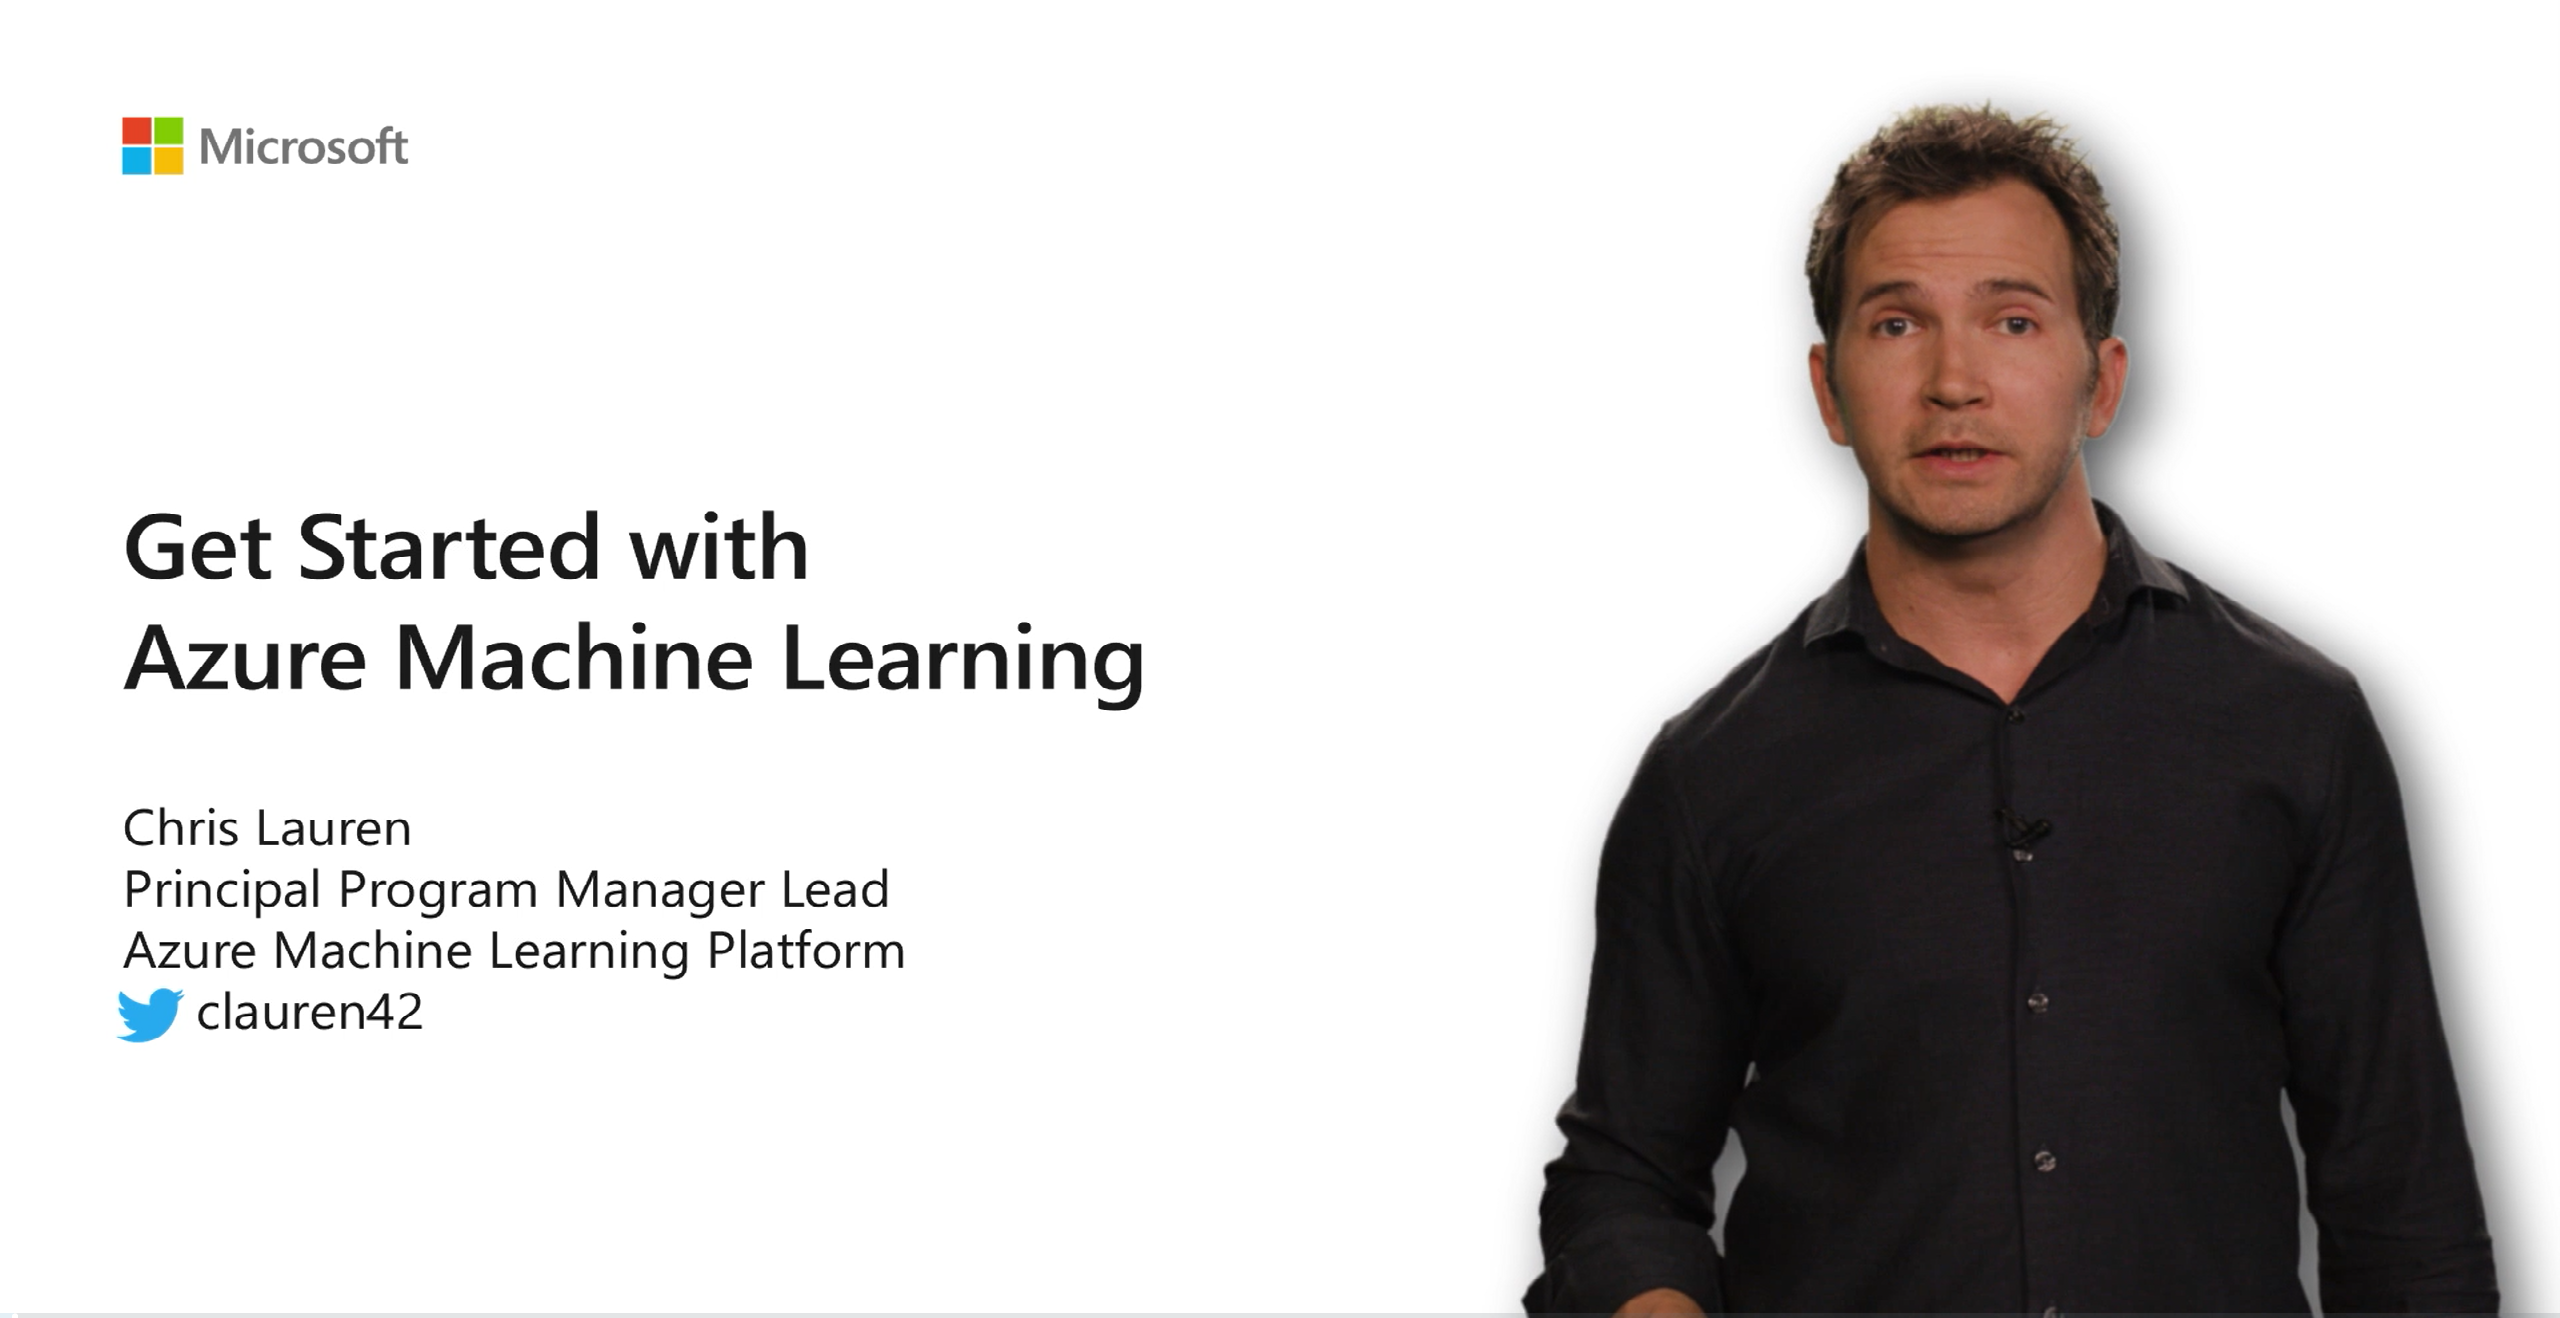 Get Started with Azure Machine Learning